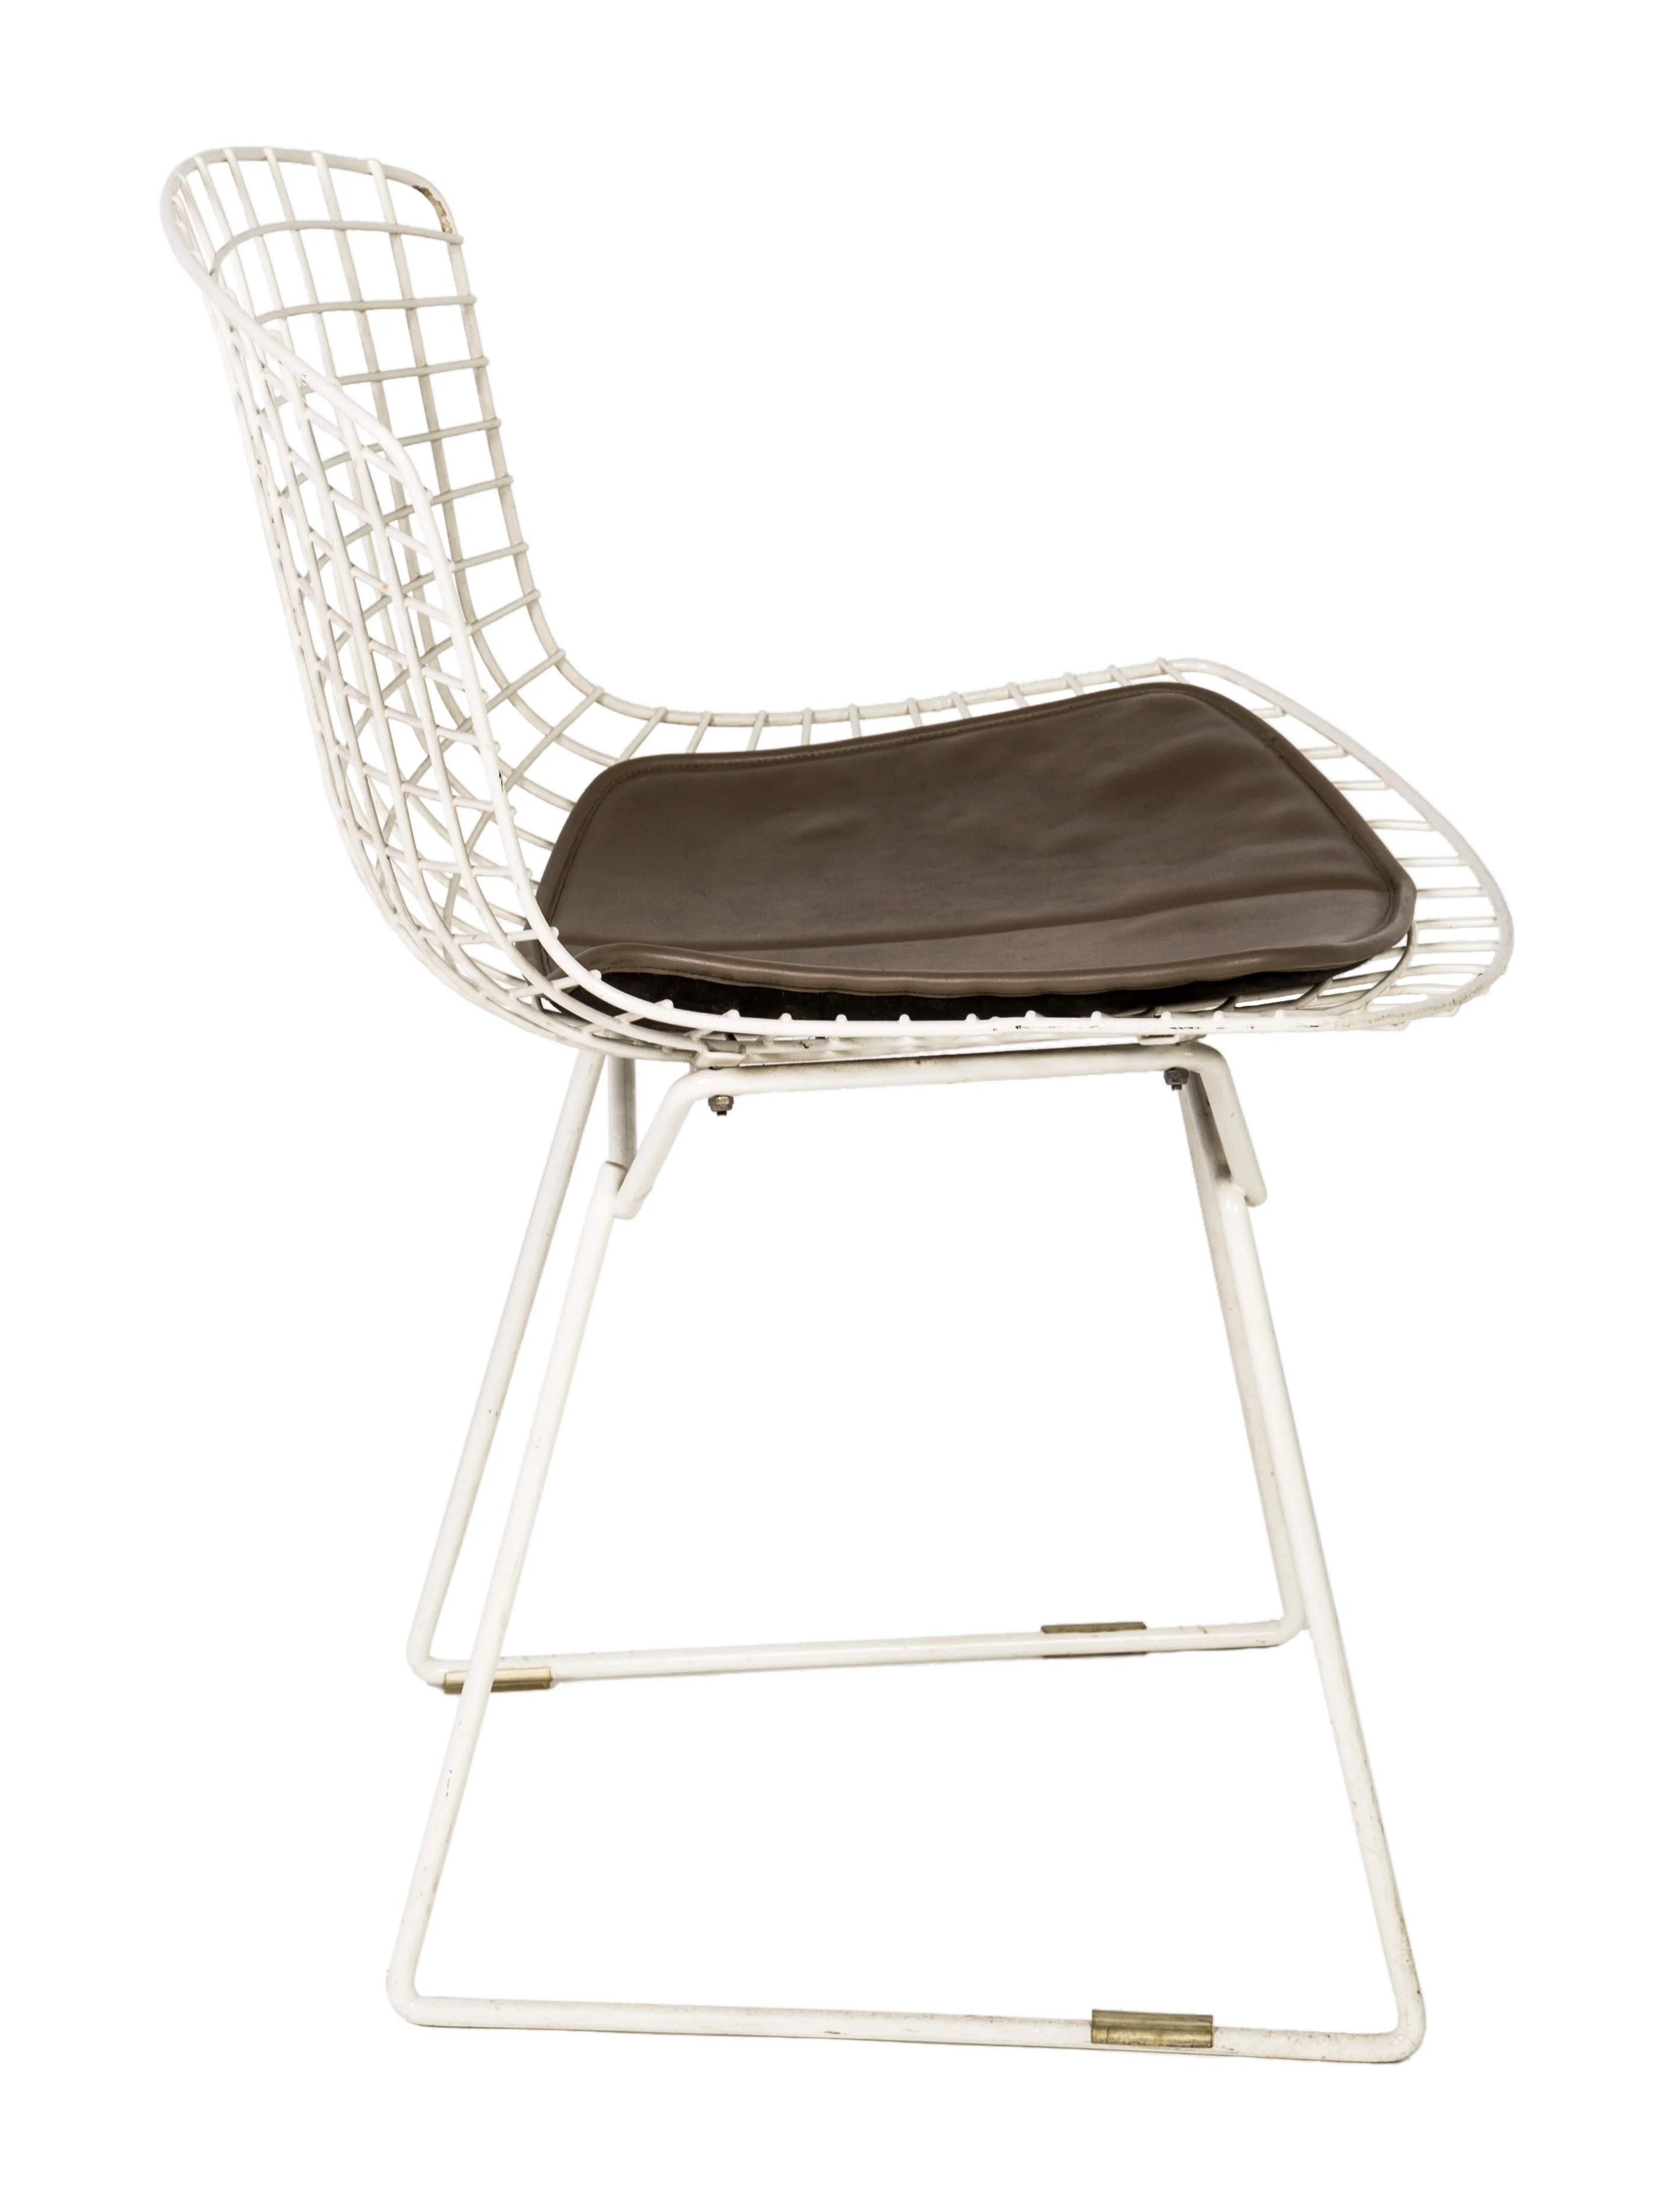 white bertoia side chair ergonomic back support cushion knoll chairs furniture knl20098 the